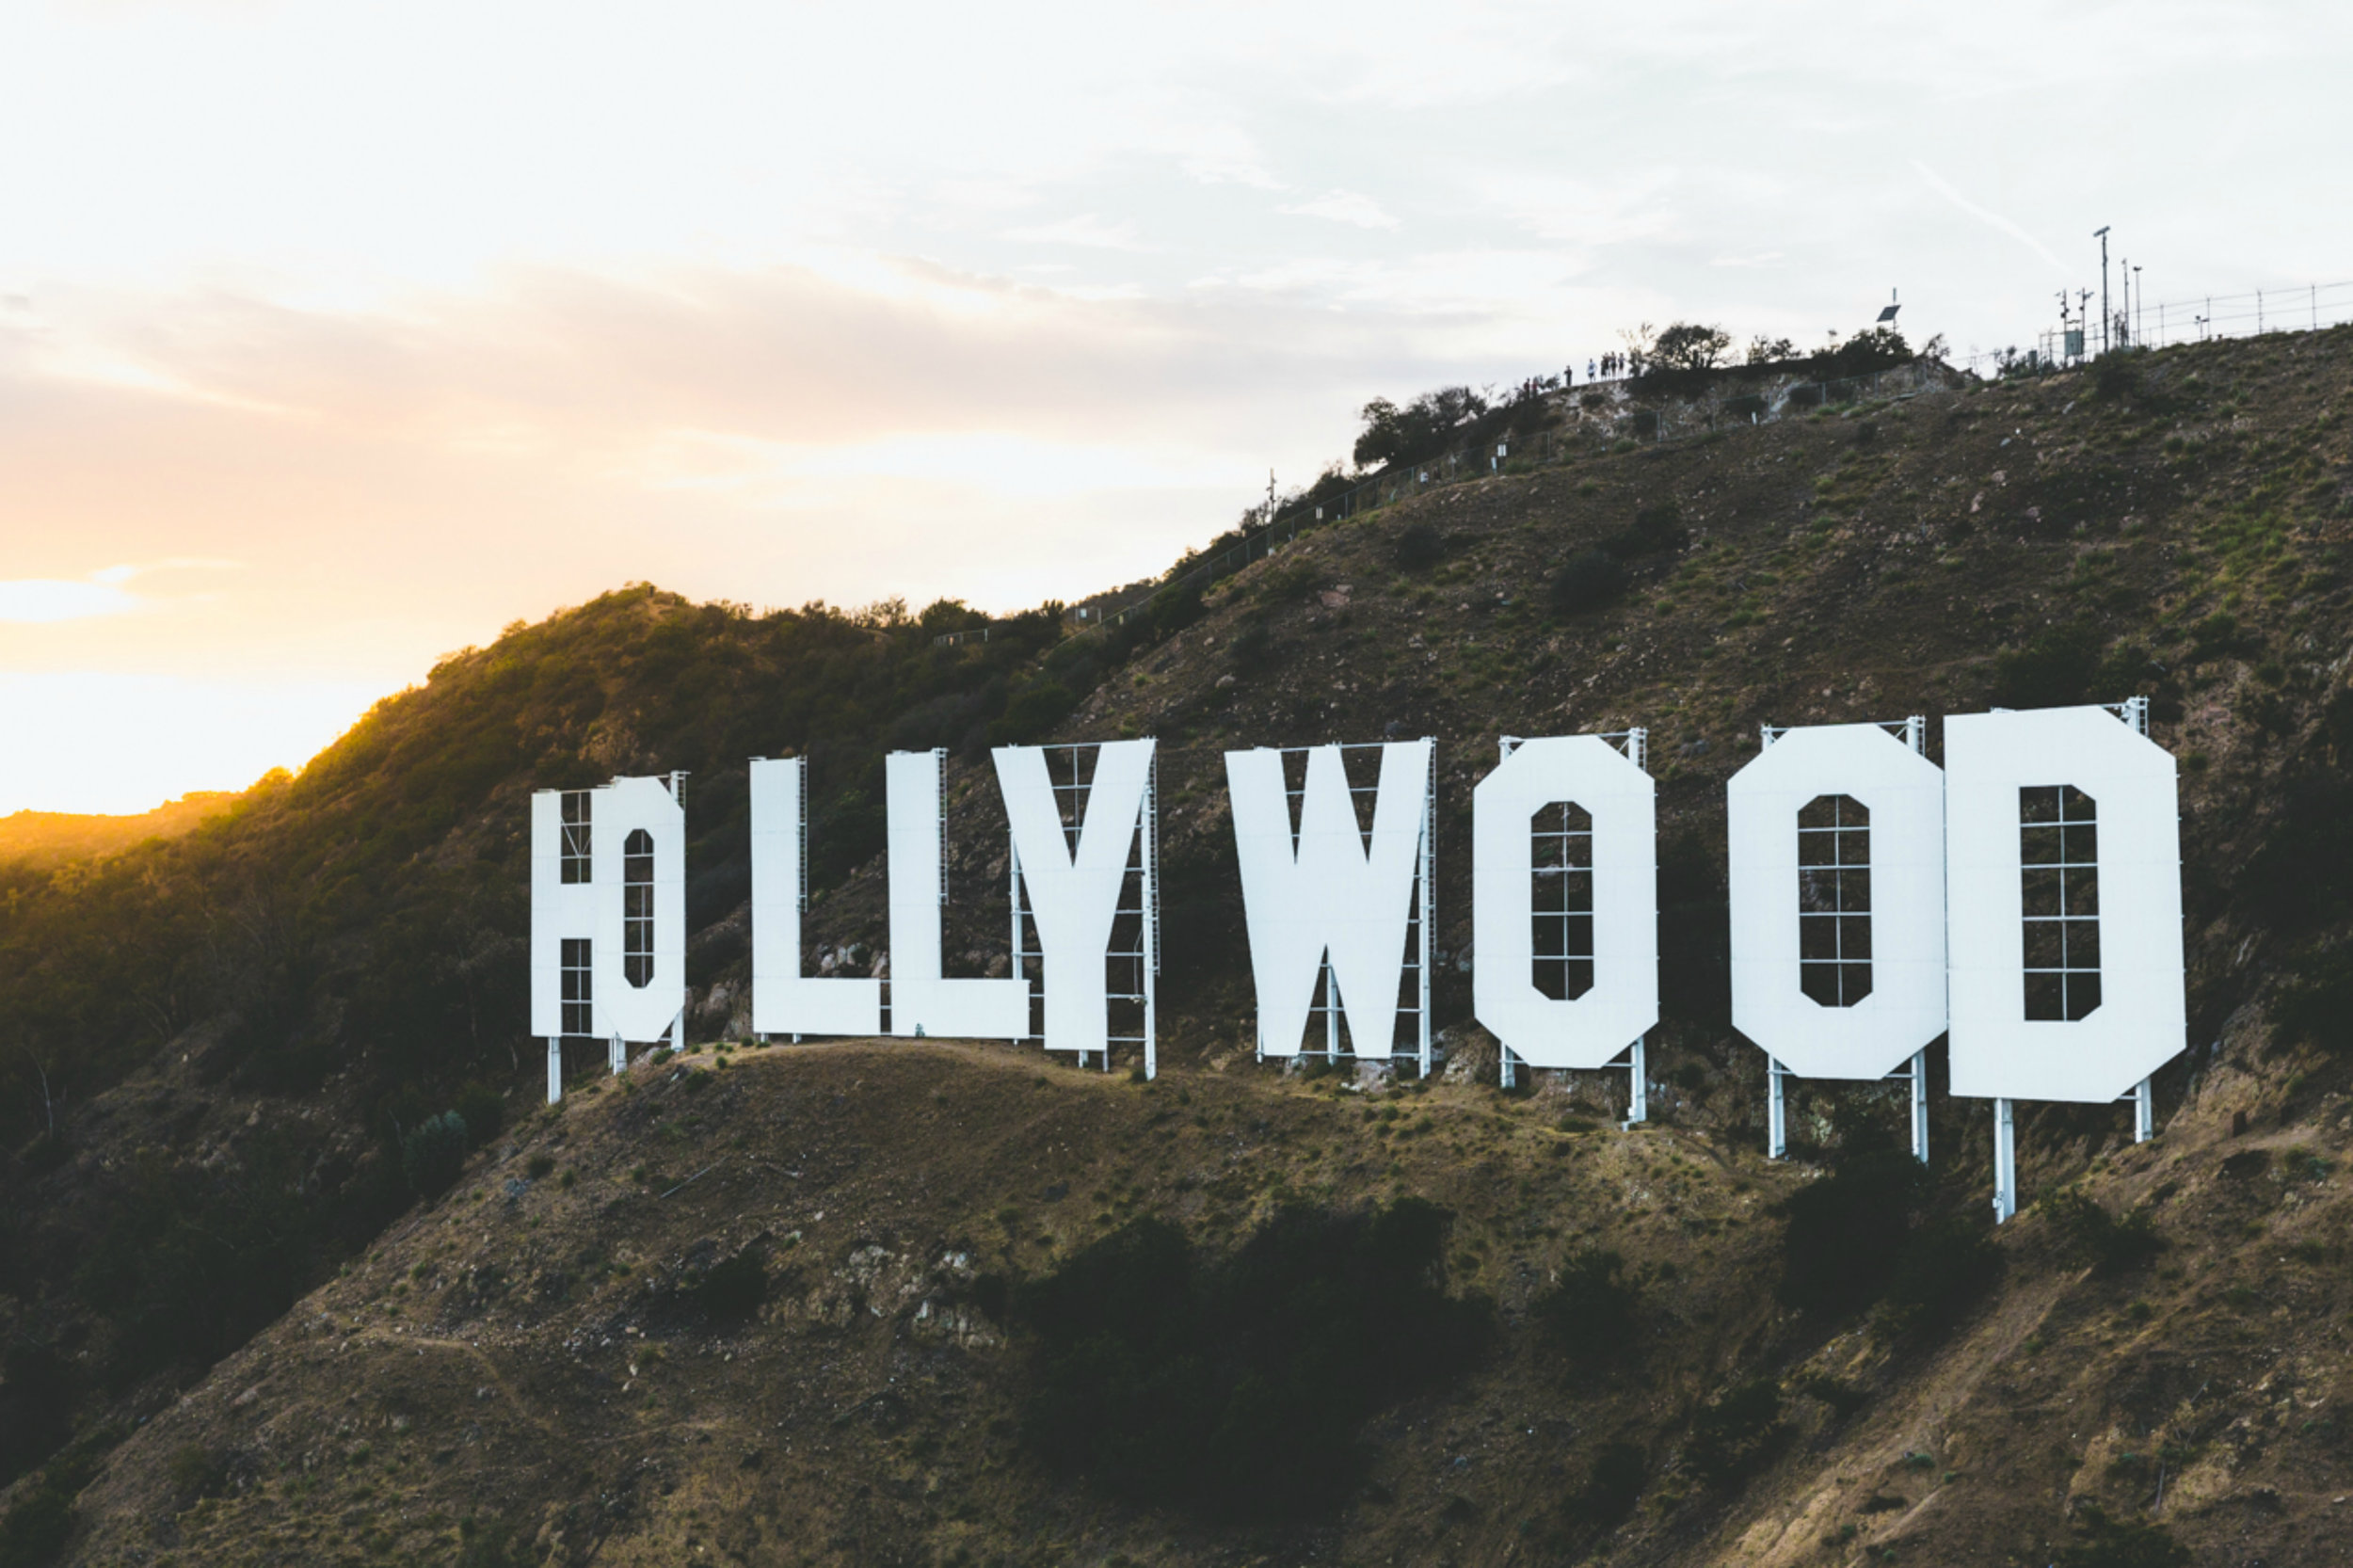 Getting a job in the entertainment industry with an MBA